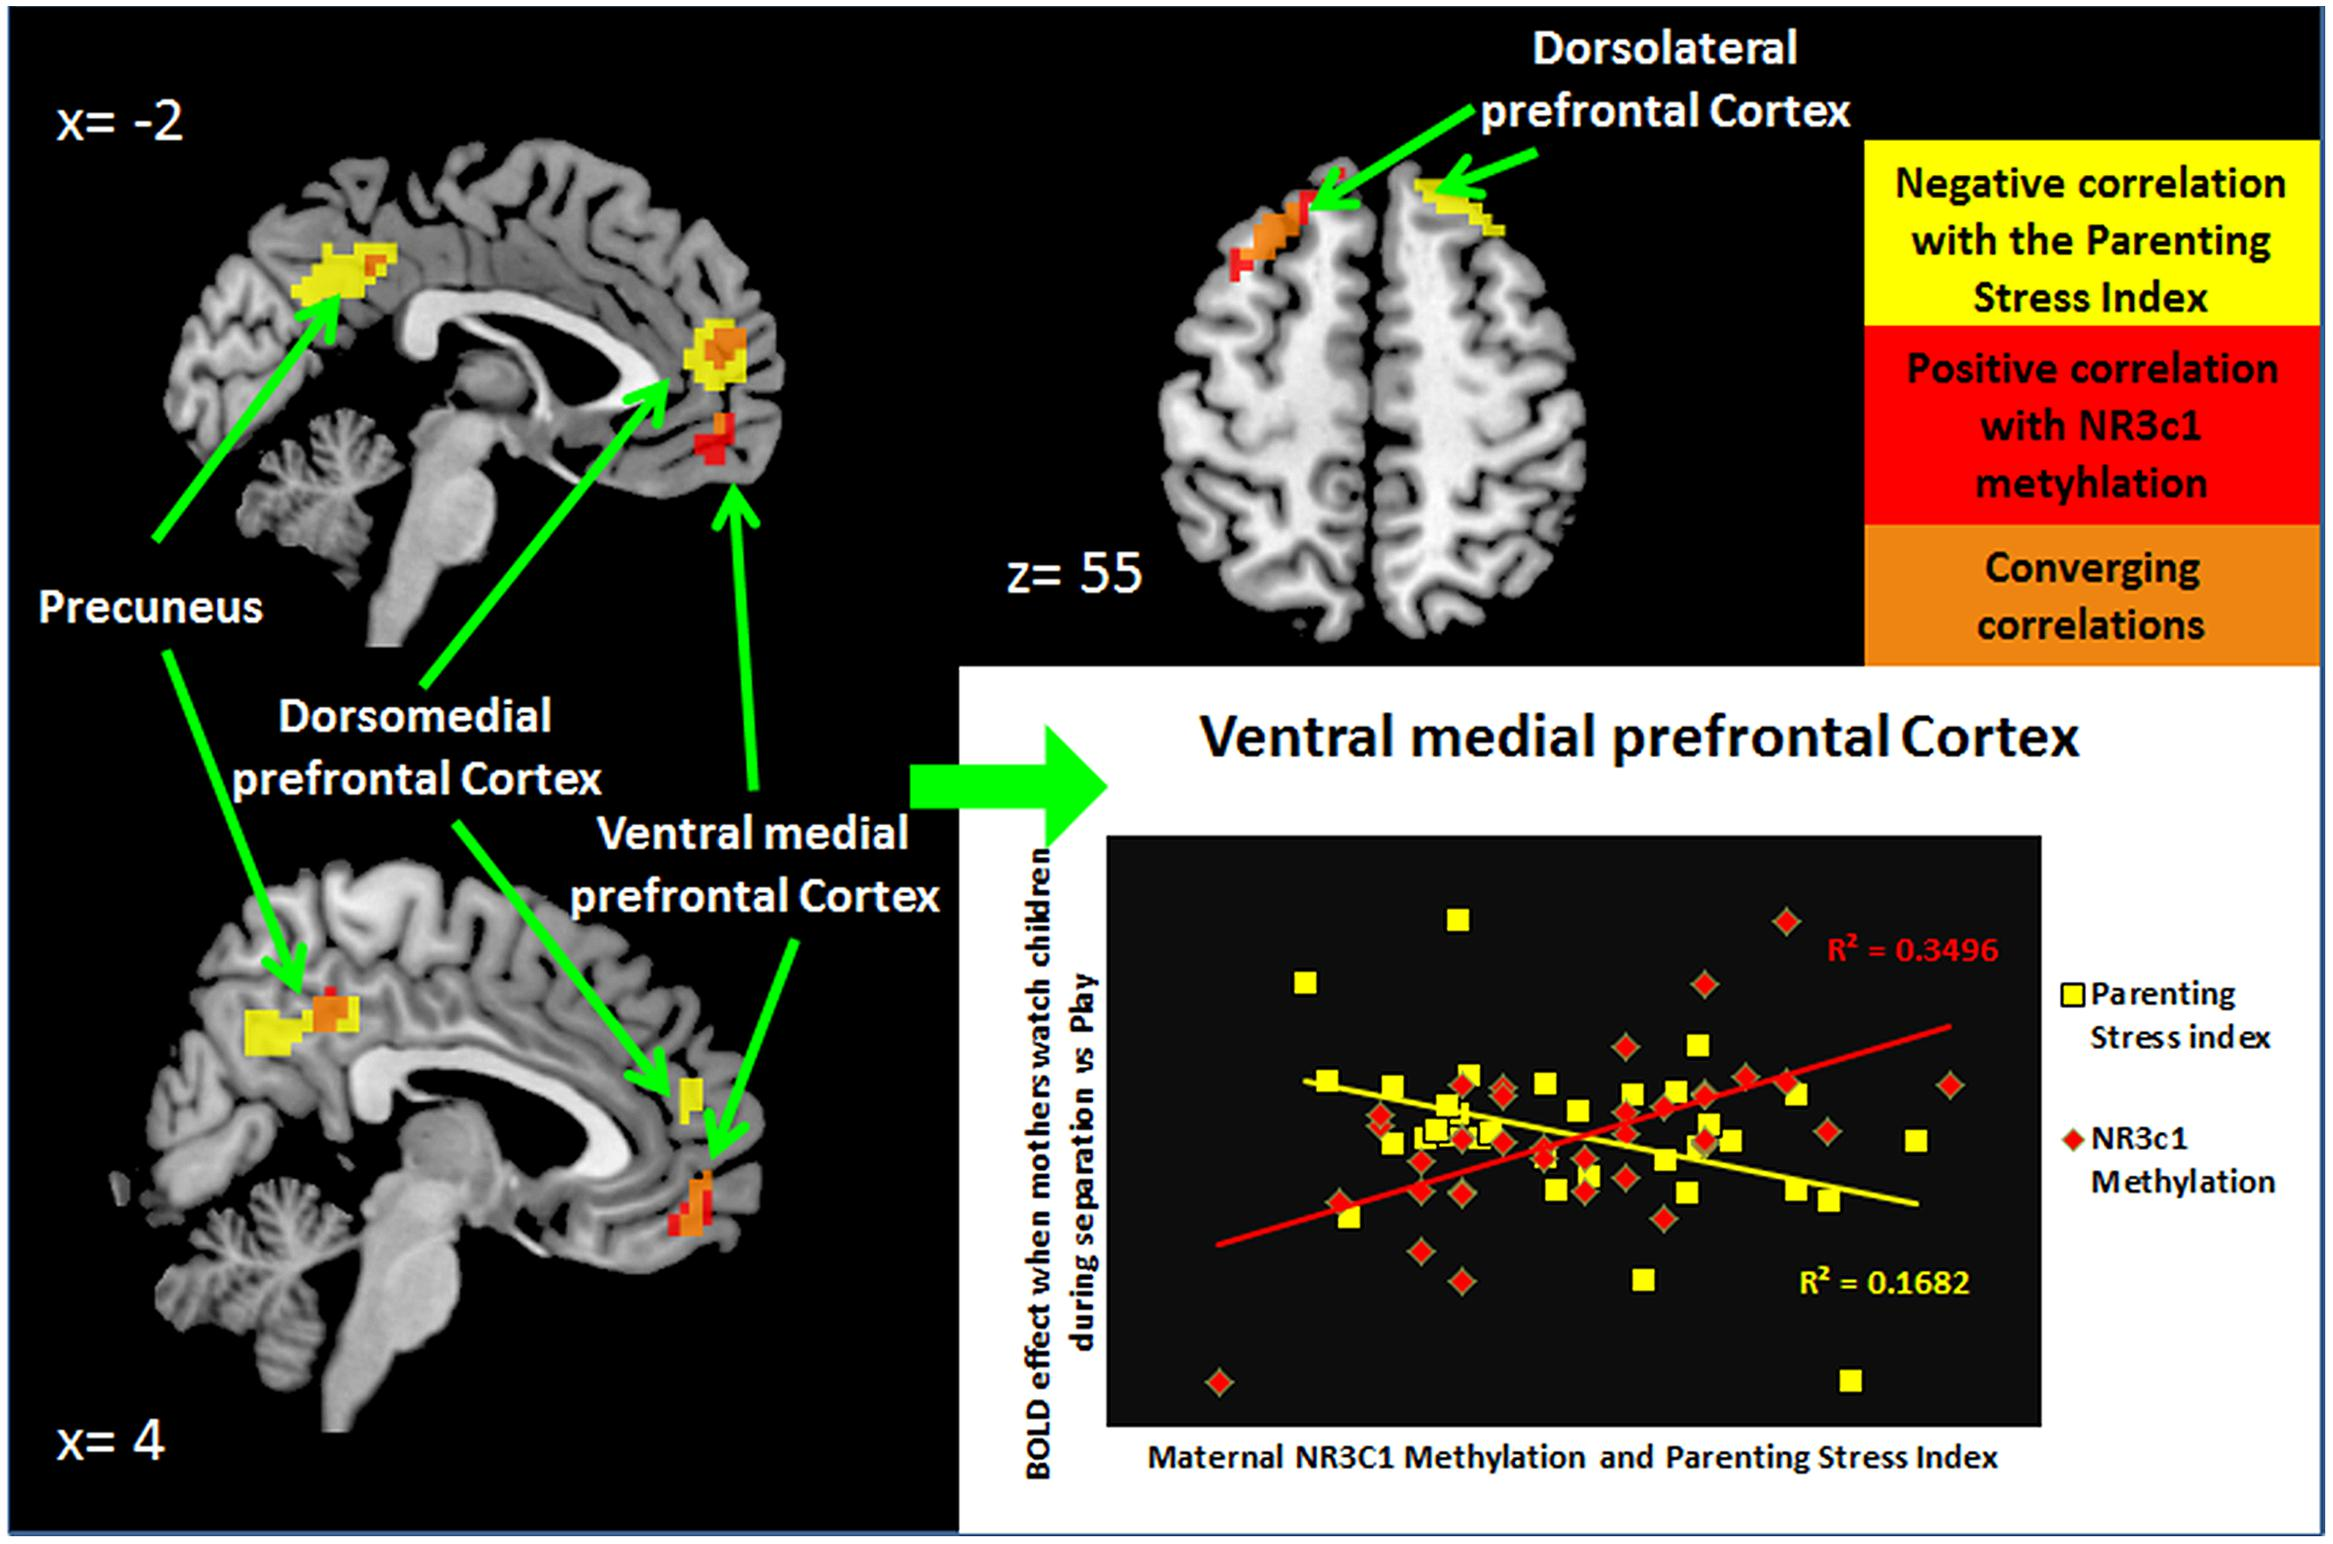 Can Criminal Behavior Be Predicted Using Brain Scans?